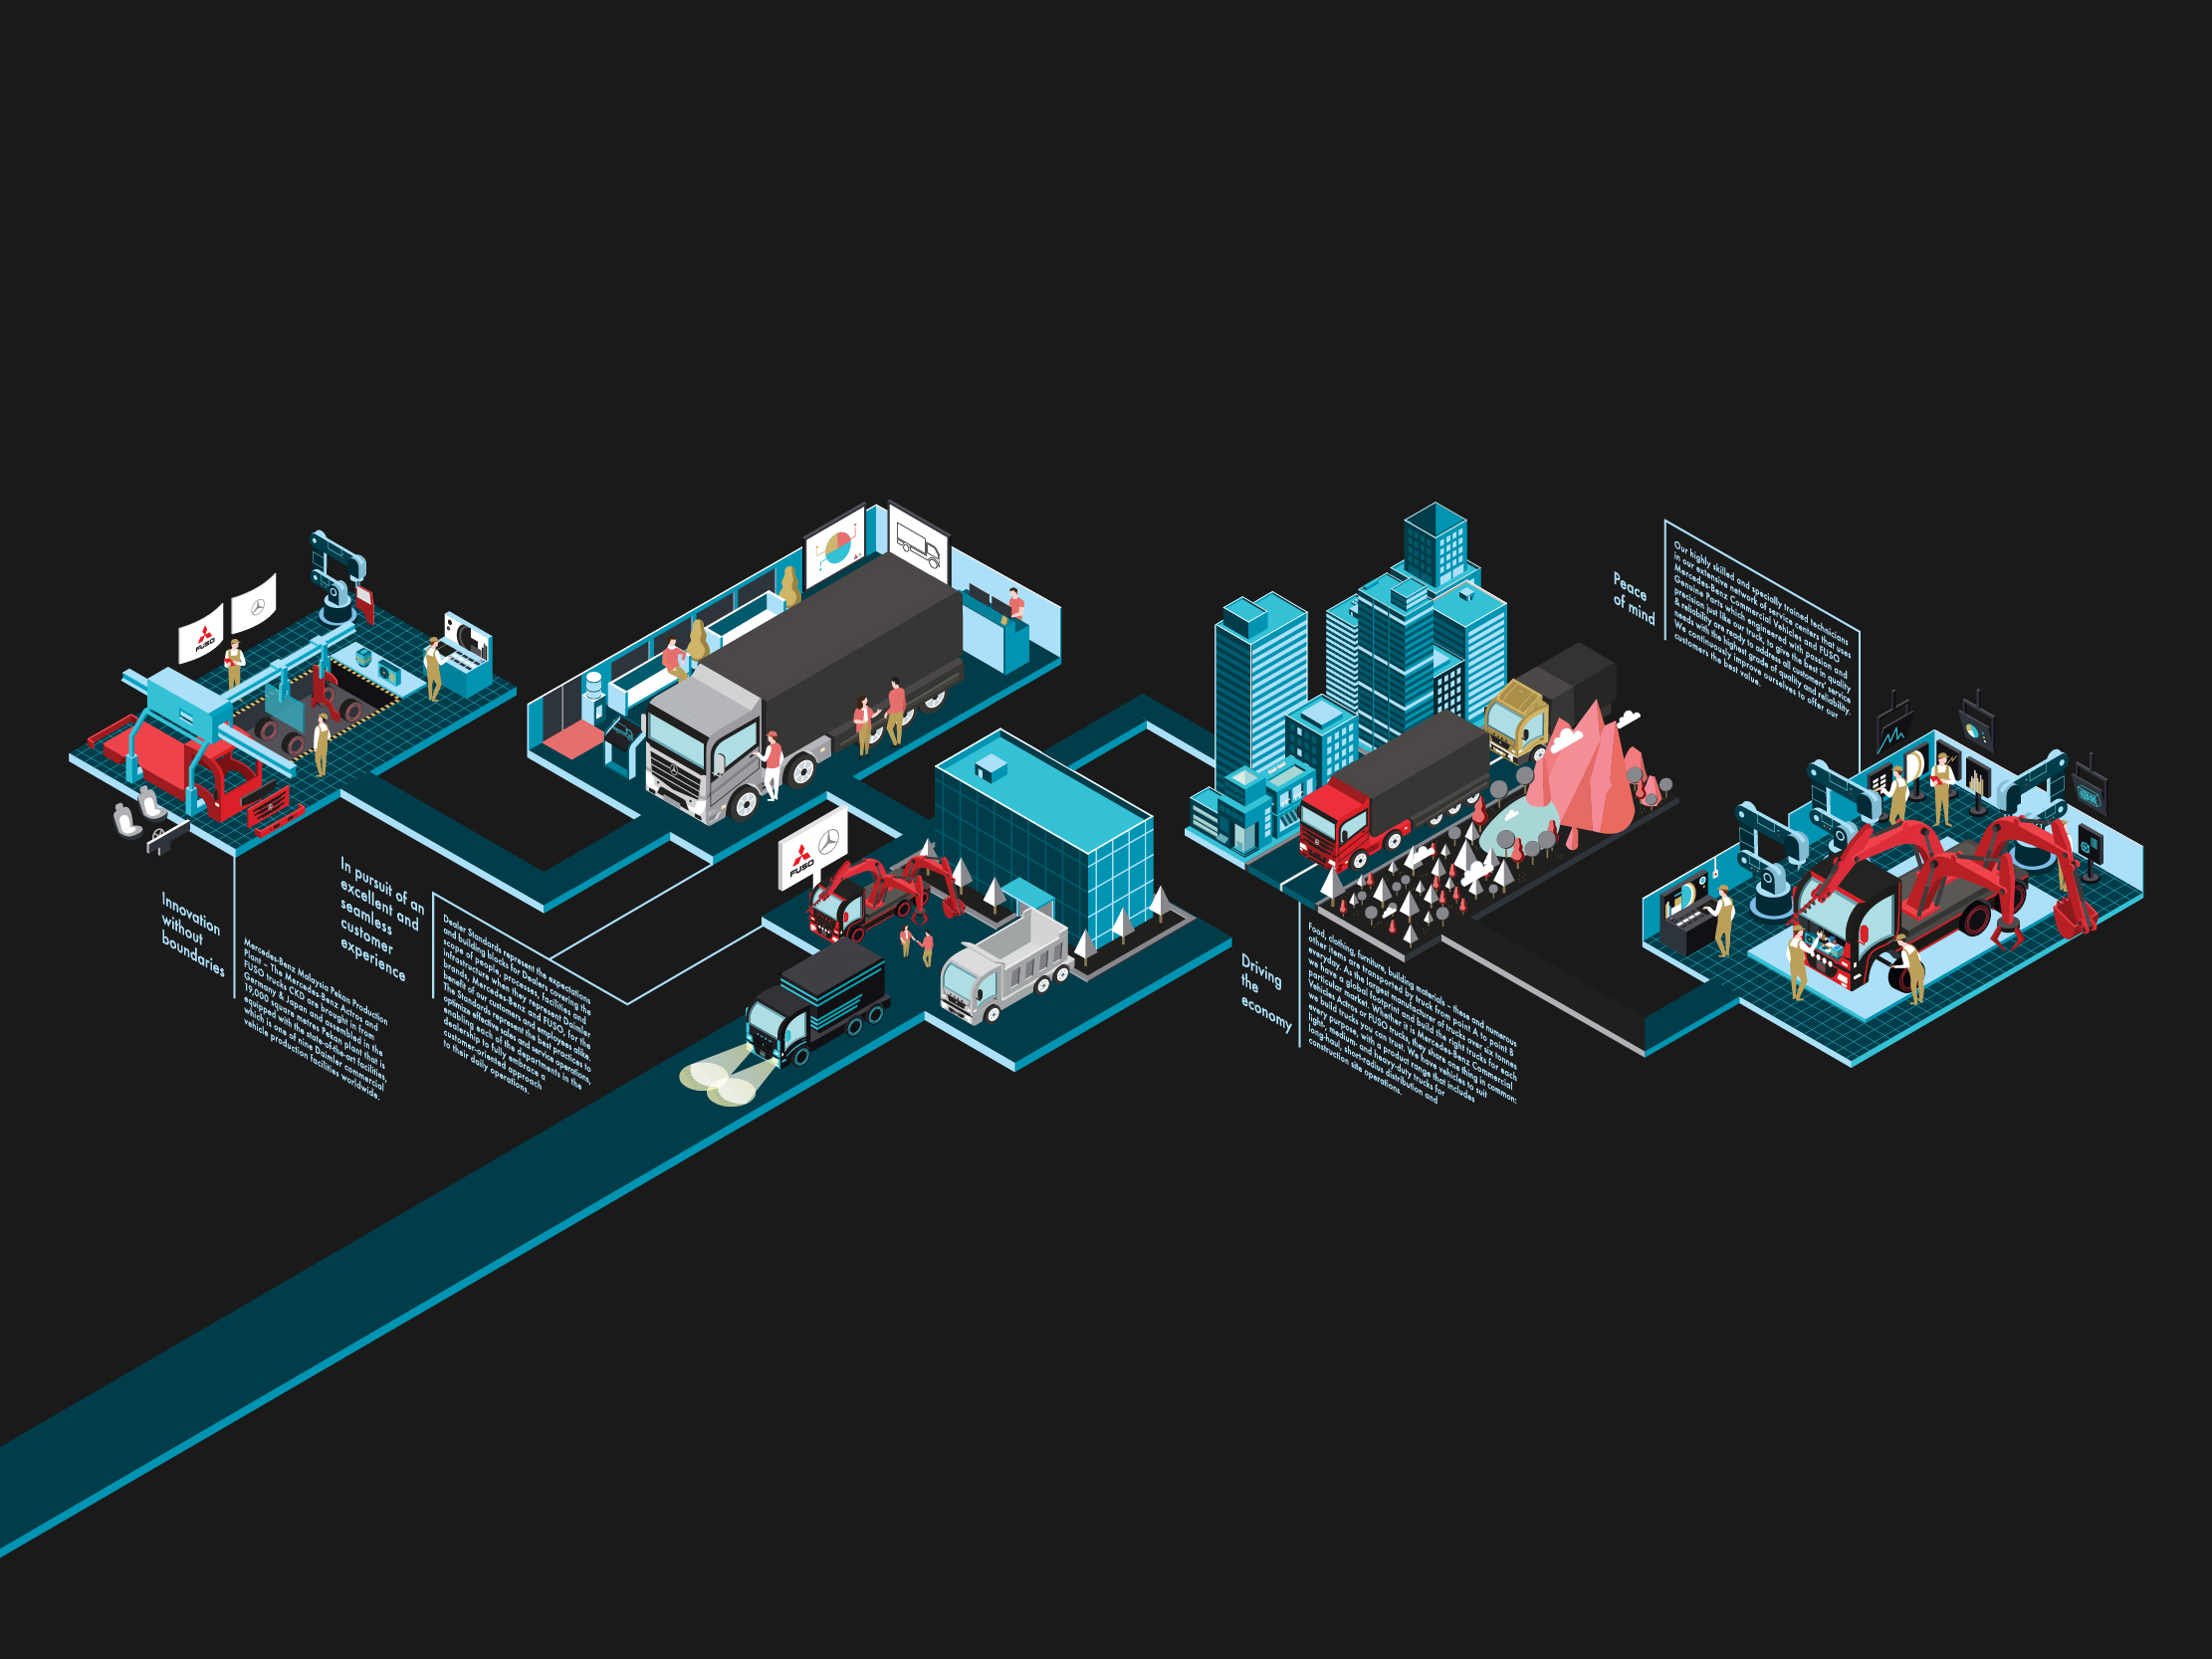 Mercedes-Benz wall art illustration design highlighting each part of their operations from assembly to sales and delivery.